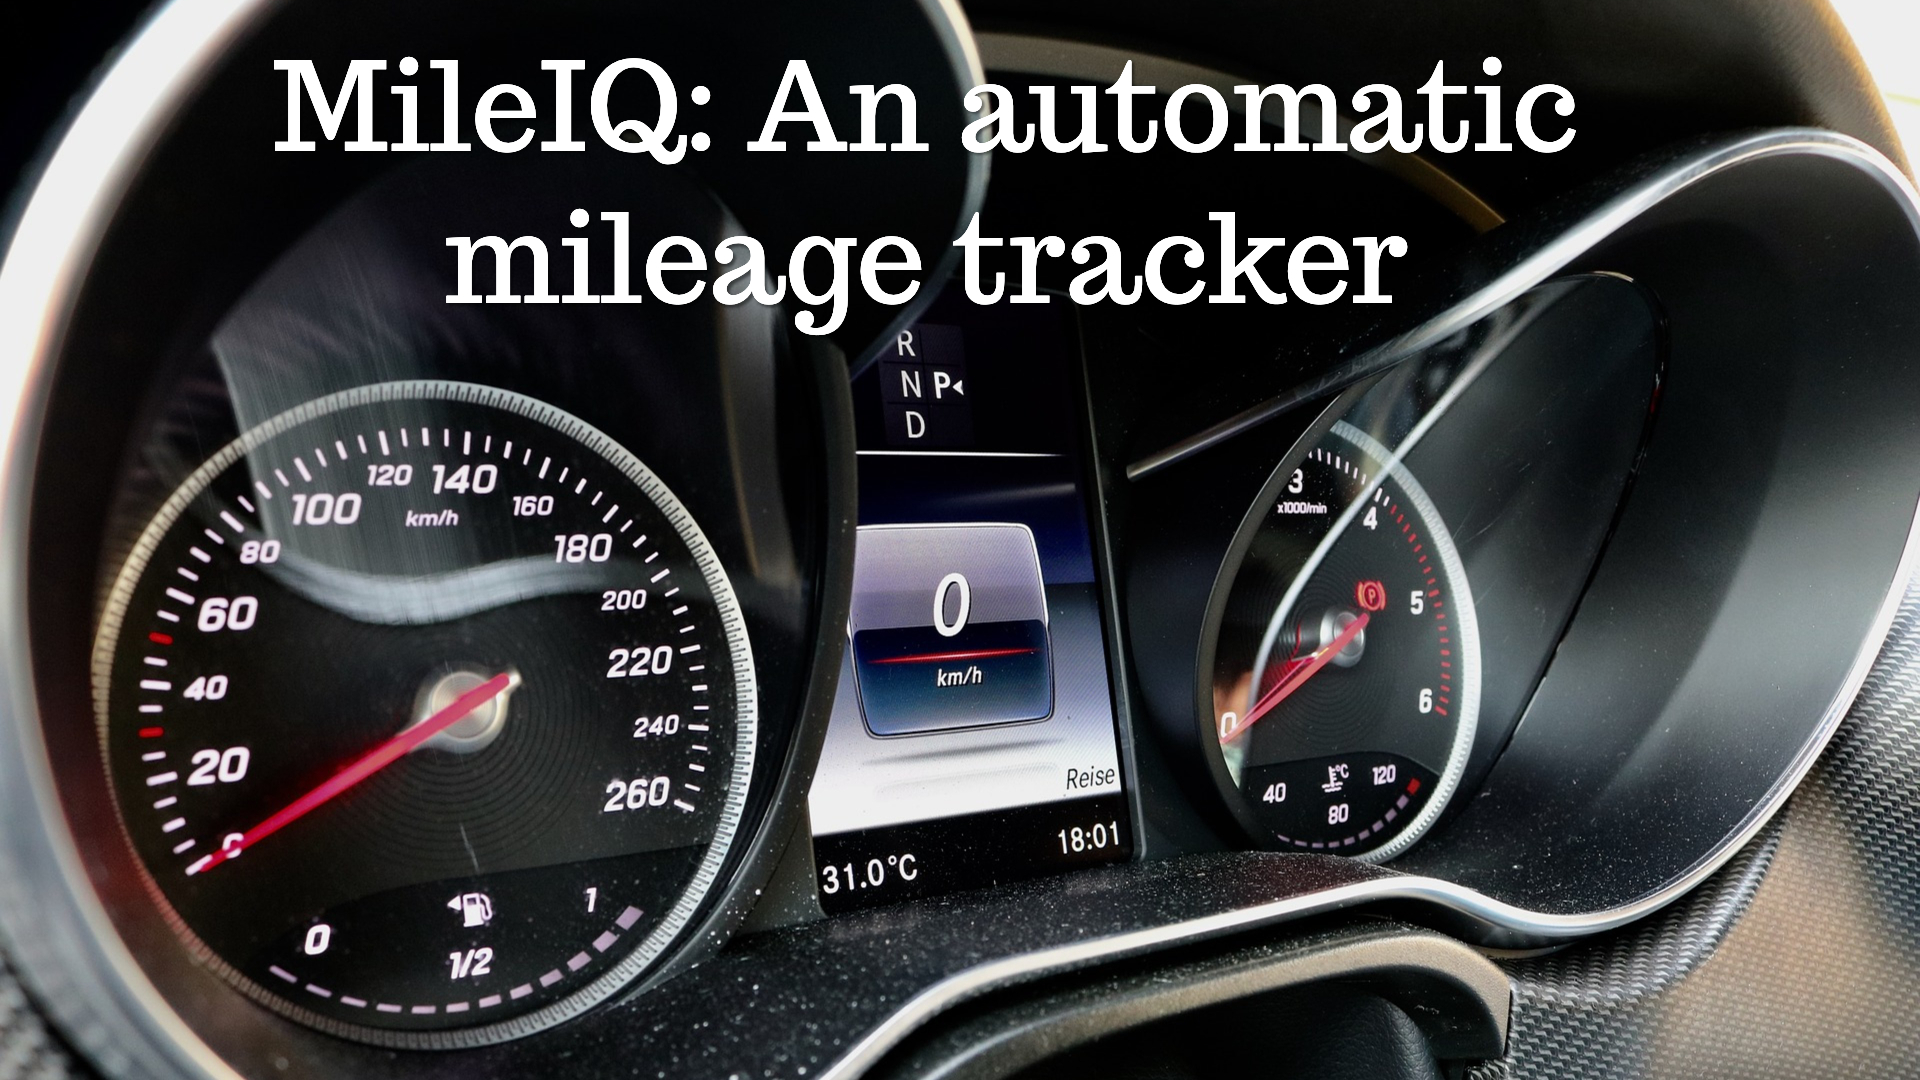 MileIQ: An automatic mileage tracker